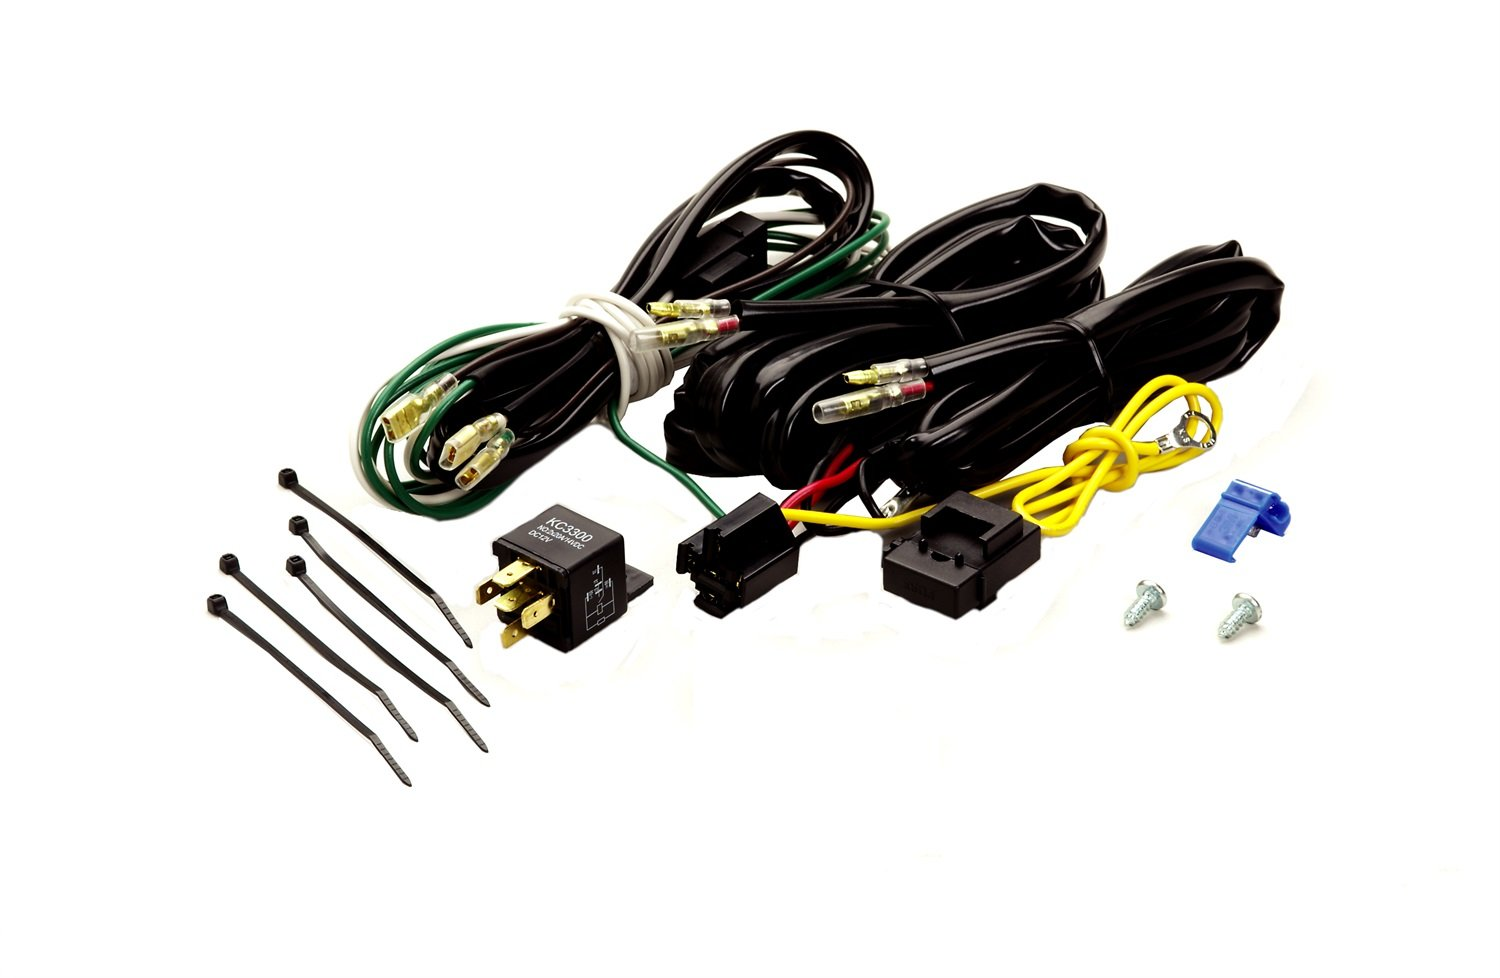 KC HiLiTES 6316 Add-On Harness Up to 2 Lights